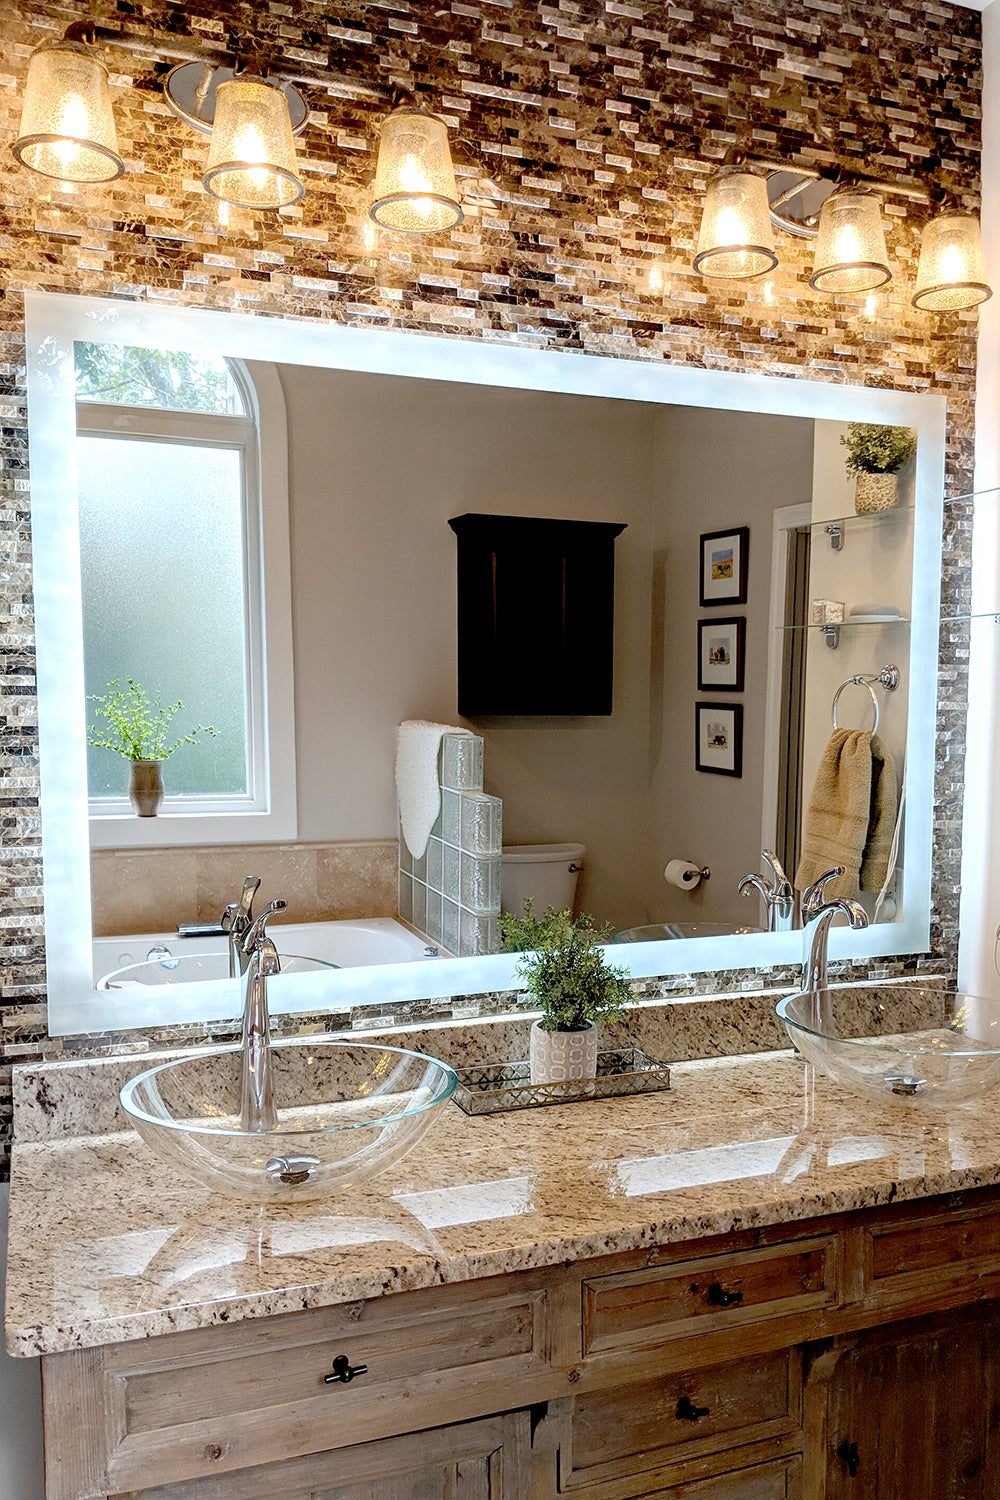 Side Lighted Led Bathroom Vanity Mirror 44 Quot X 36